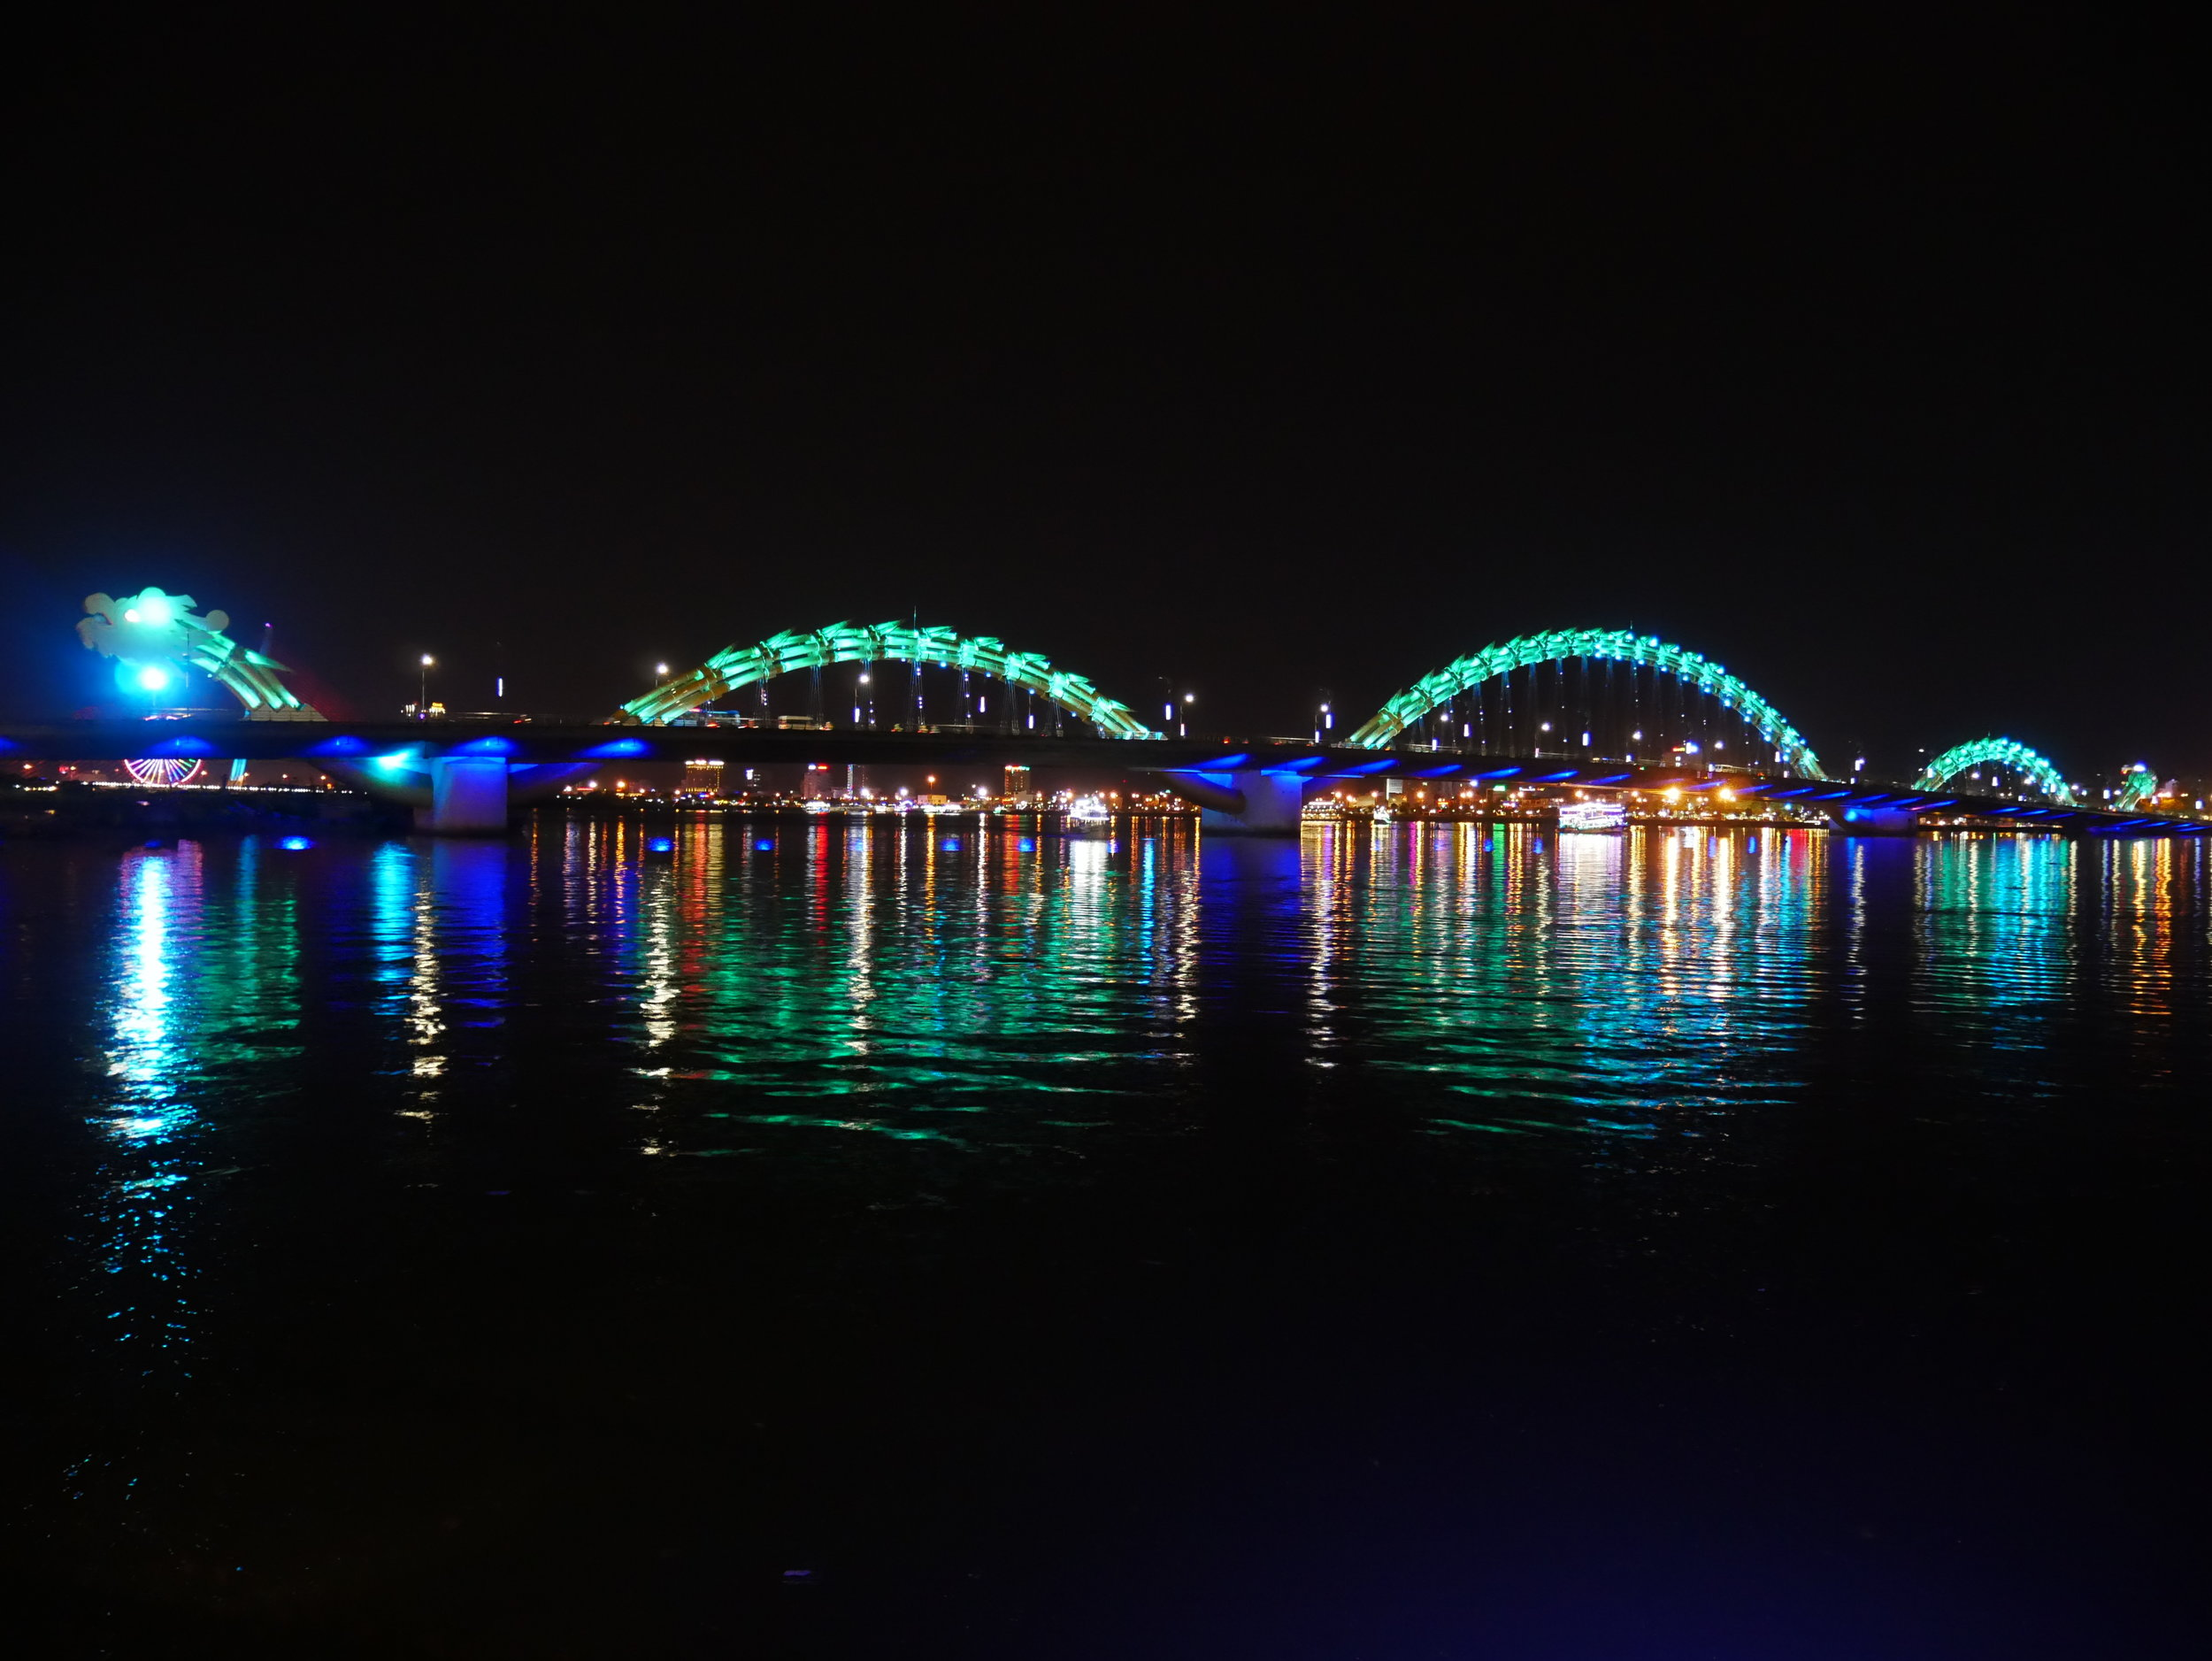 Dragon Bridge in Da Nang lit up with colorful lights at nighttime